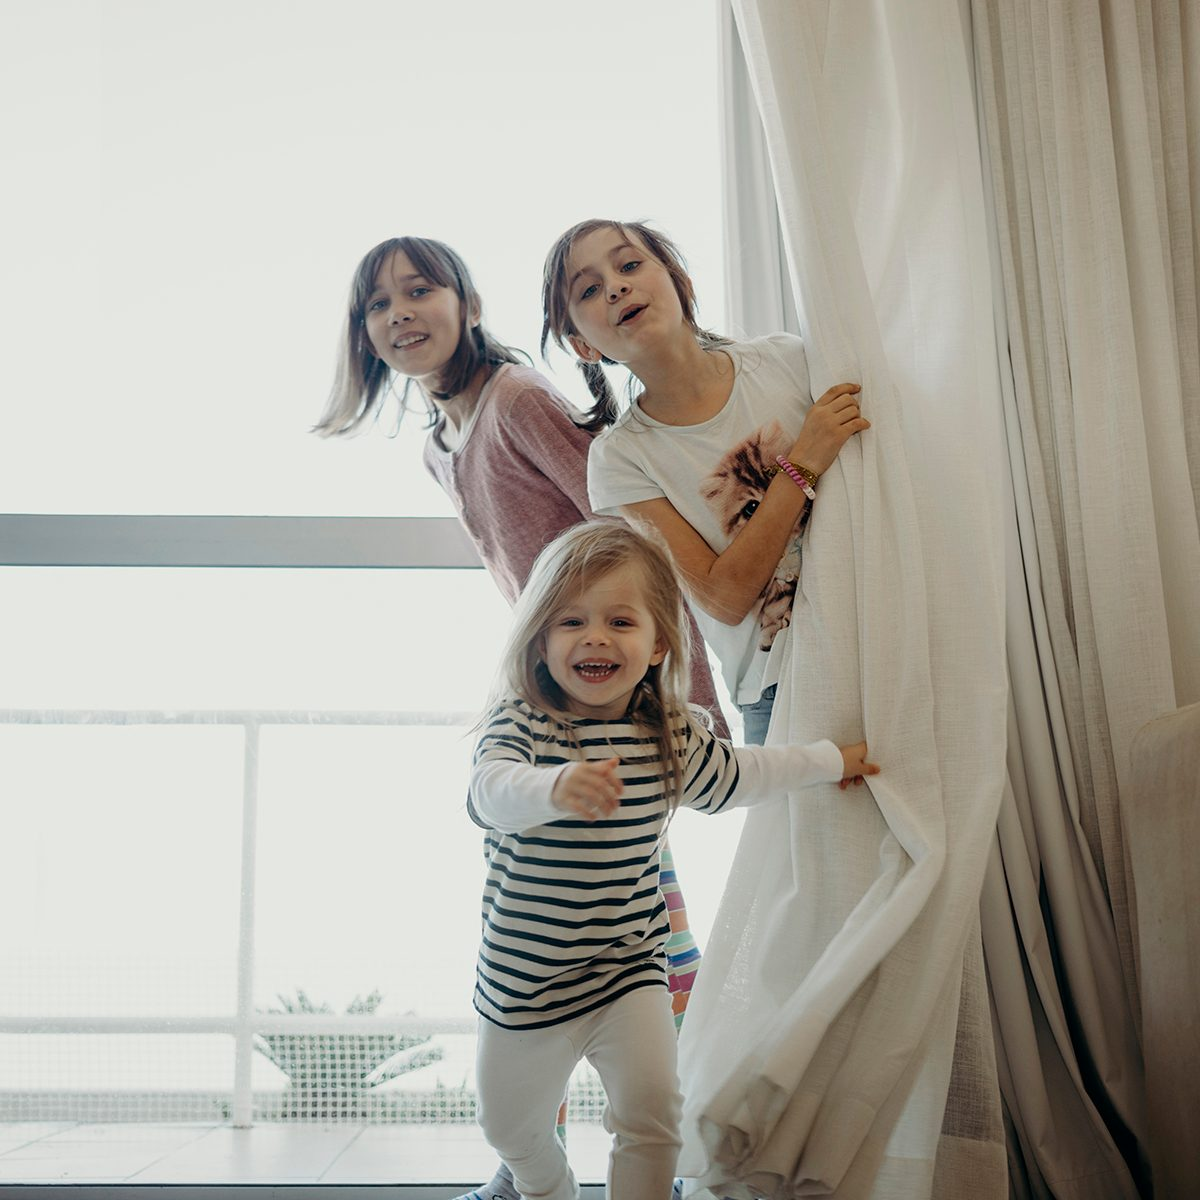 Three Young Girls Peer From Behind Curtain